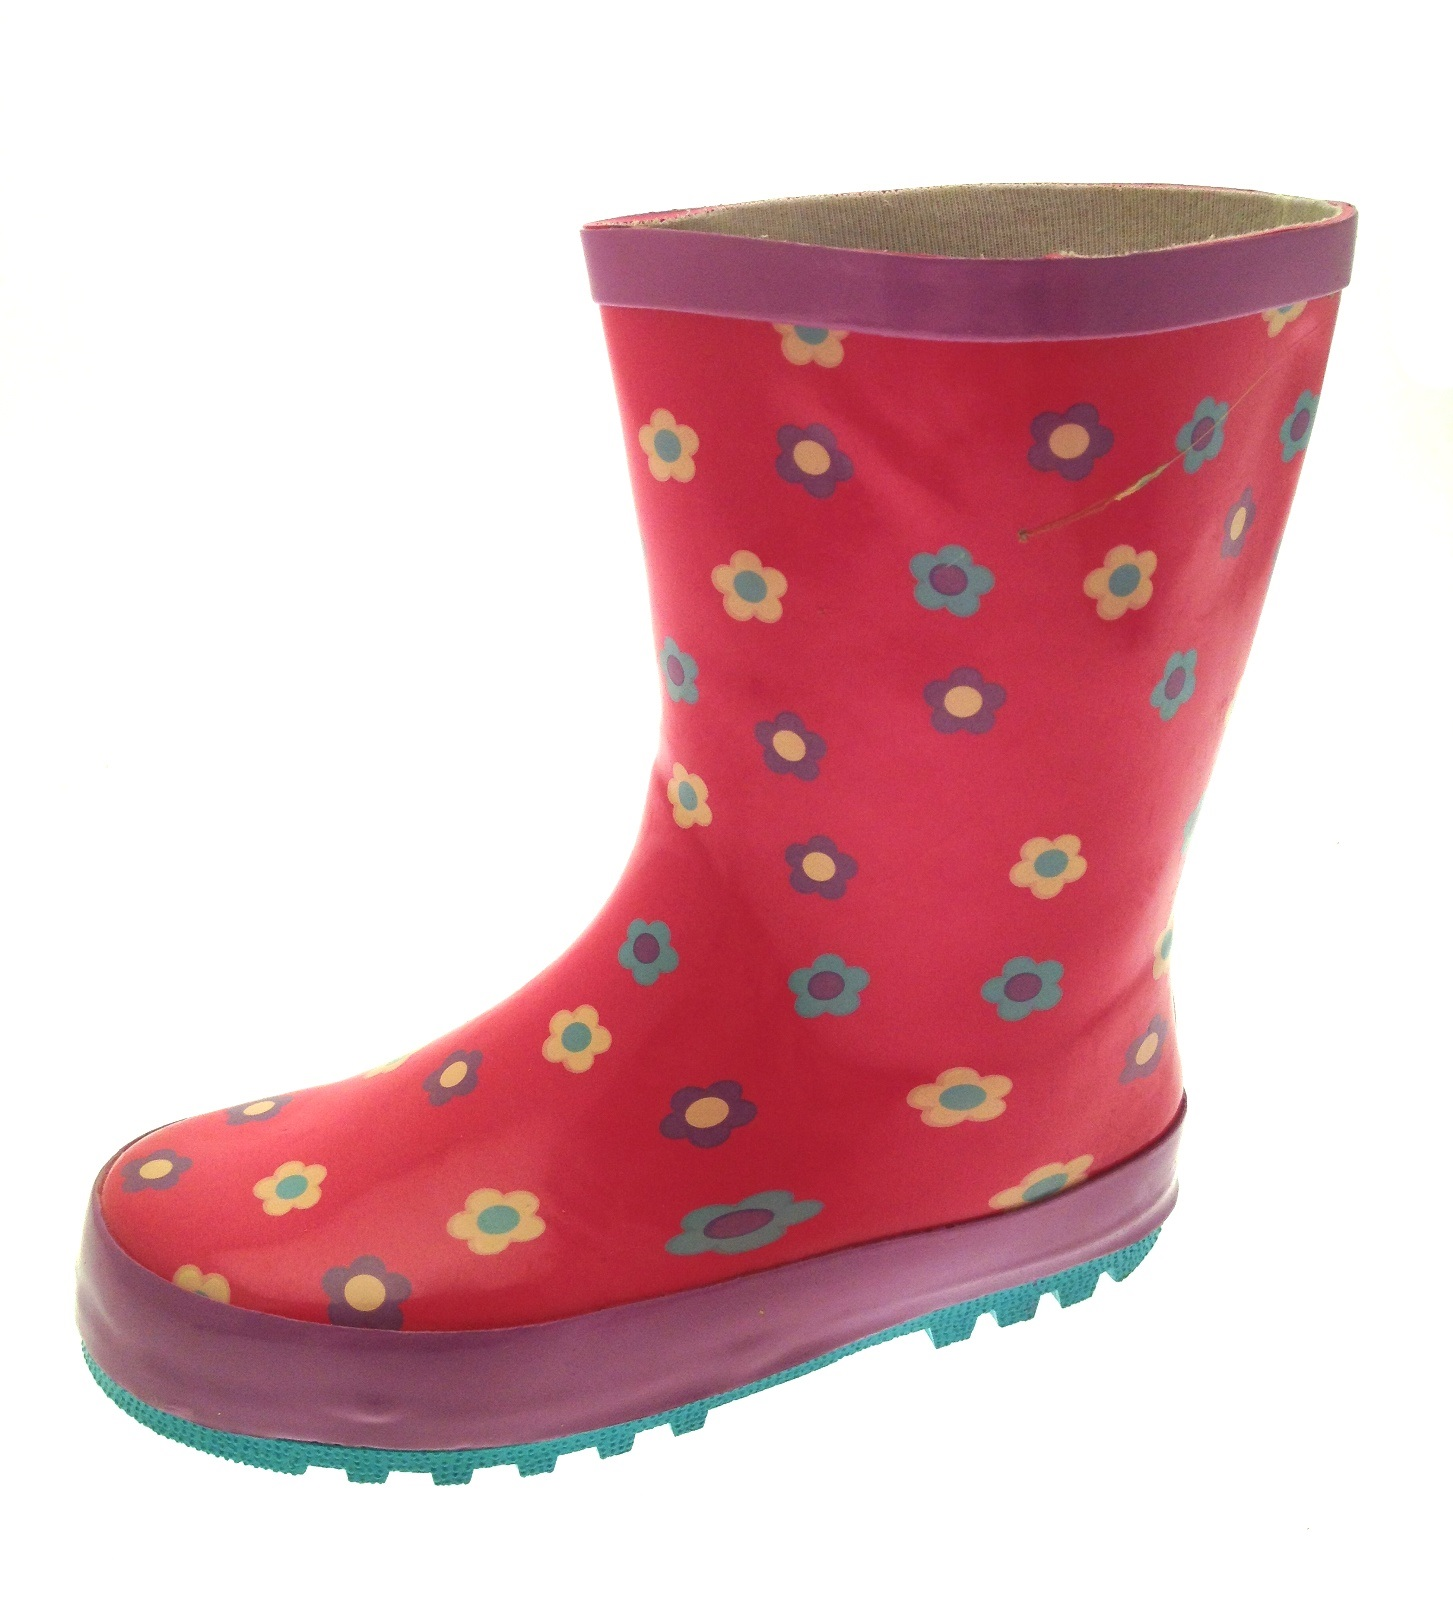 Keep your feet well protected during the wet and colder seasons with this pair of Unisex Rubber Rain Boots. This item is made of durable PVC material that is not only easy to clean and maintain, but can also withstand rough weather and repeated use.4/5(49).